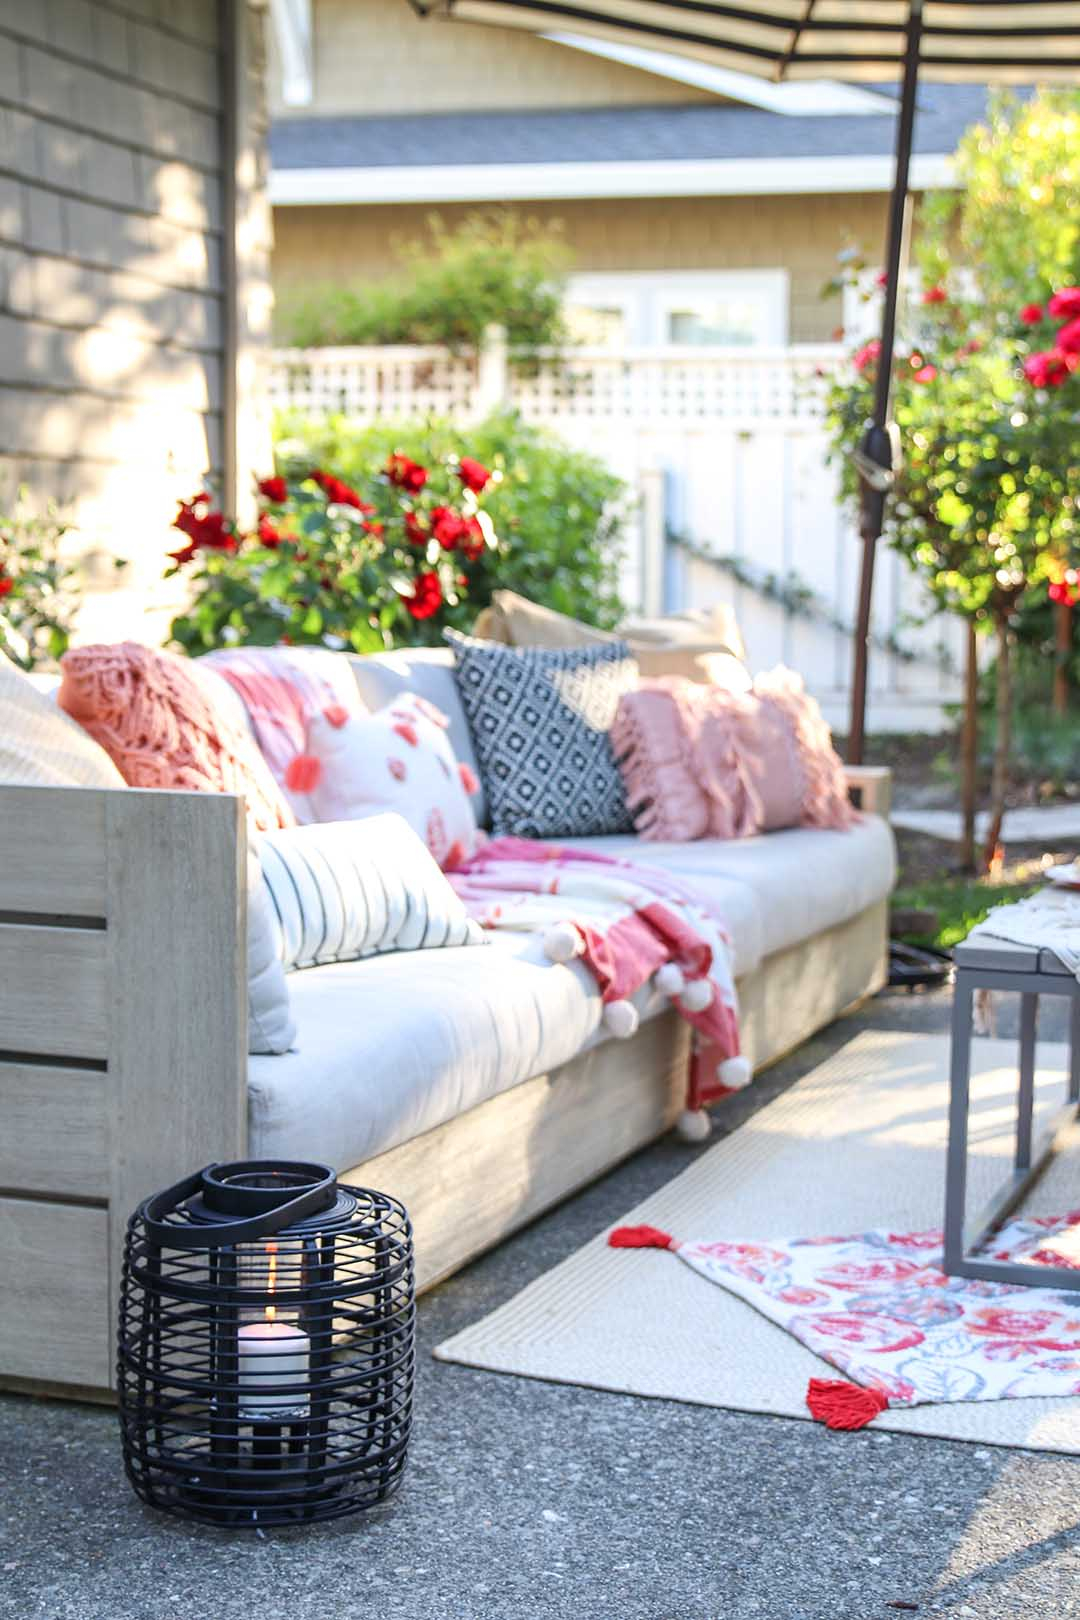 Patio Decorating Ideas 7 Simple Summer Updates Modern Glam pertaining to 16 Smart Designs of How to Makeover Ideas To Decorate Backyard